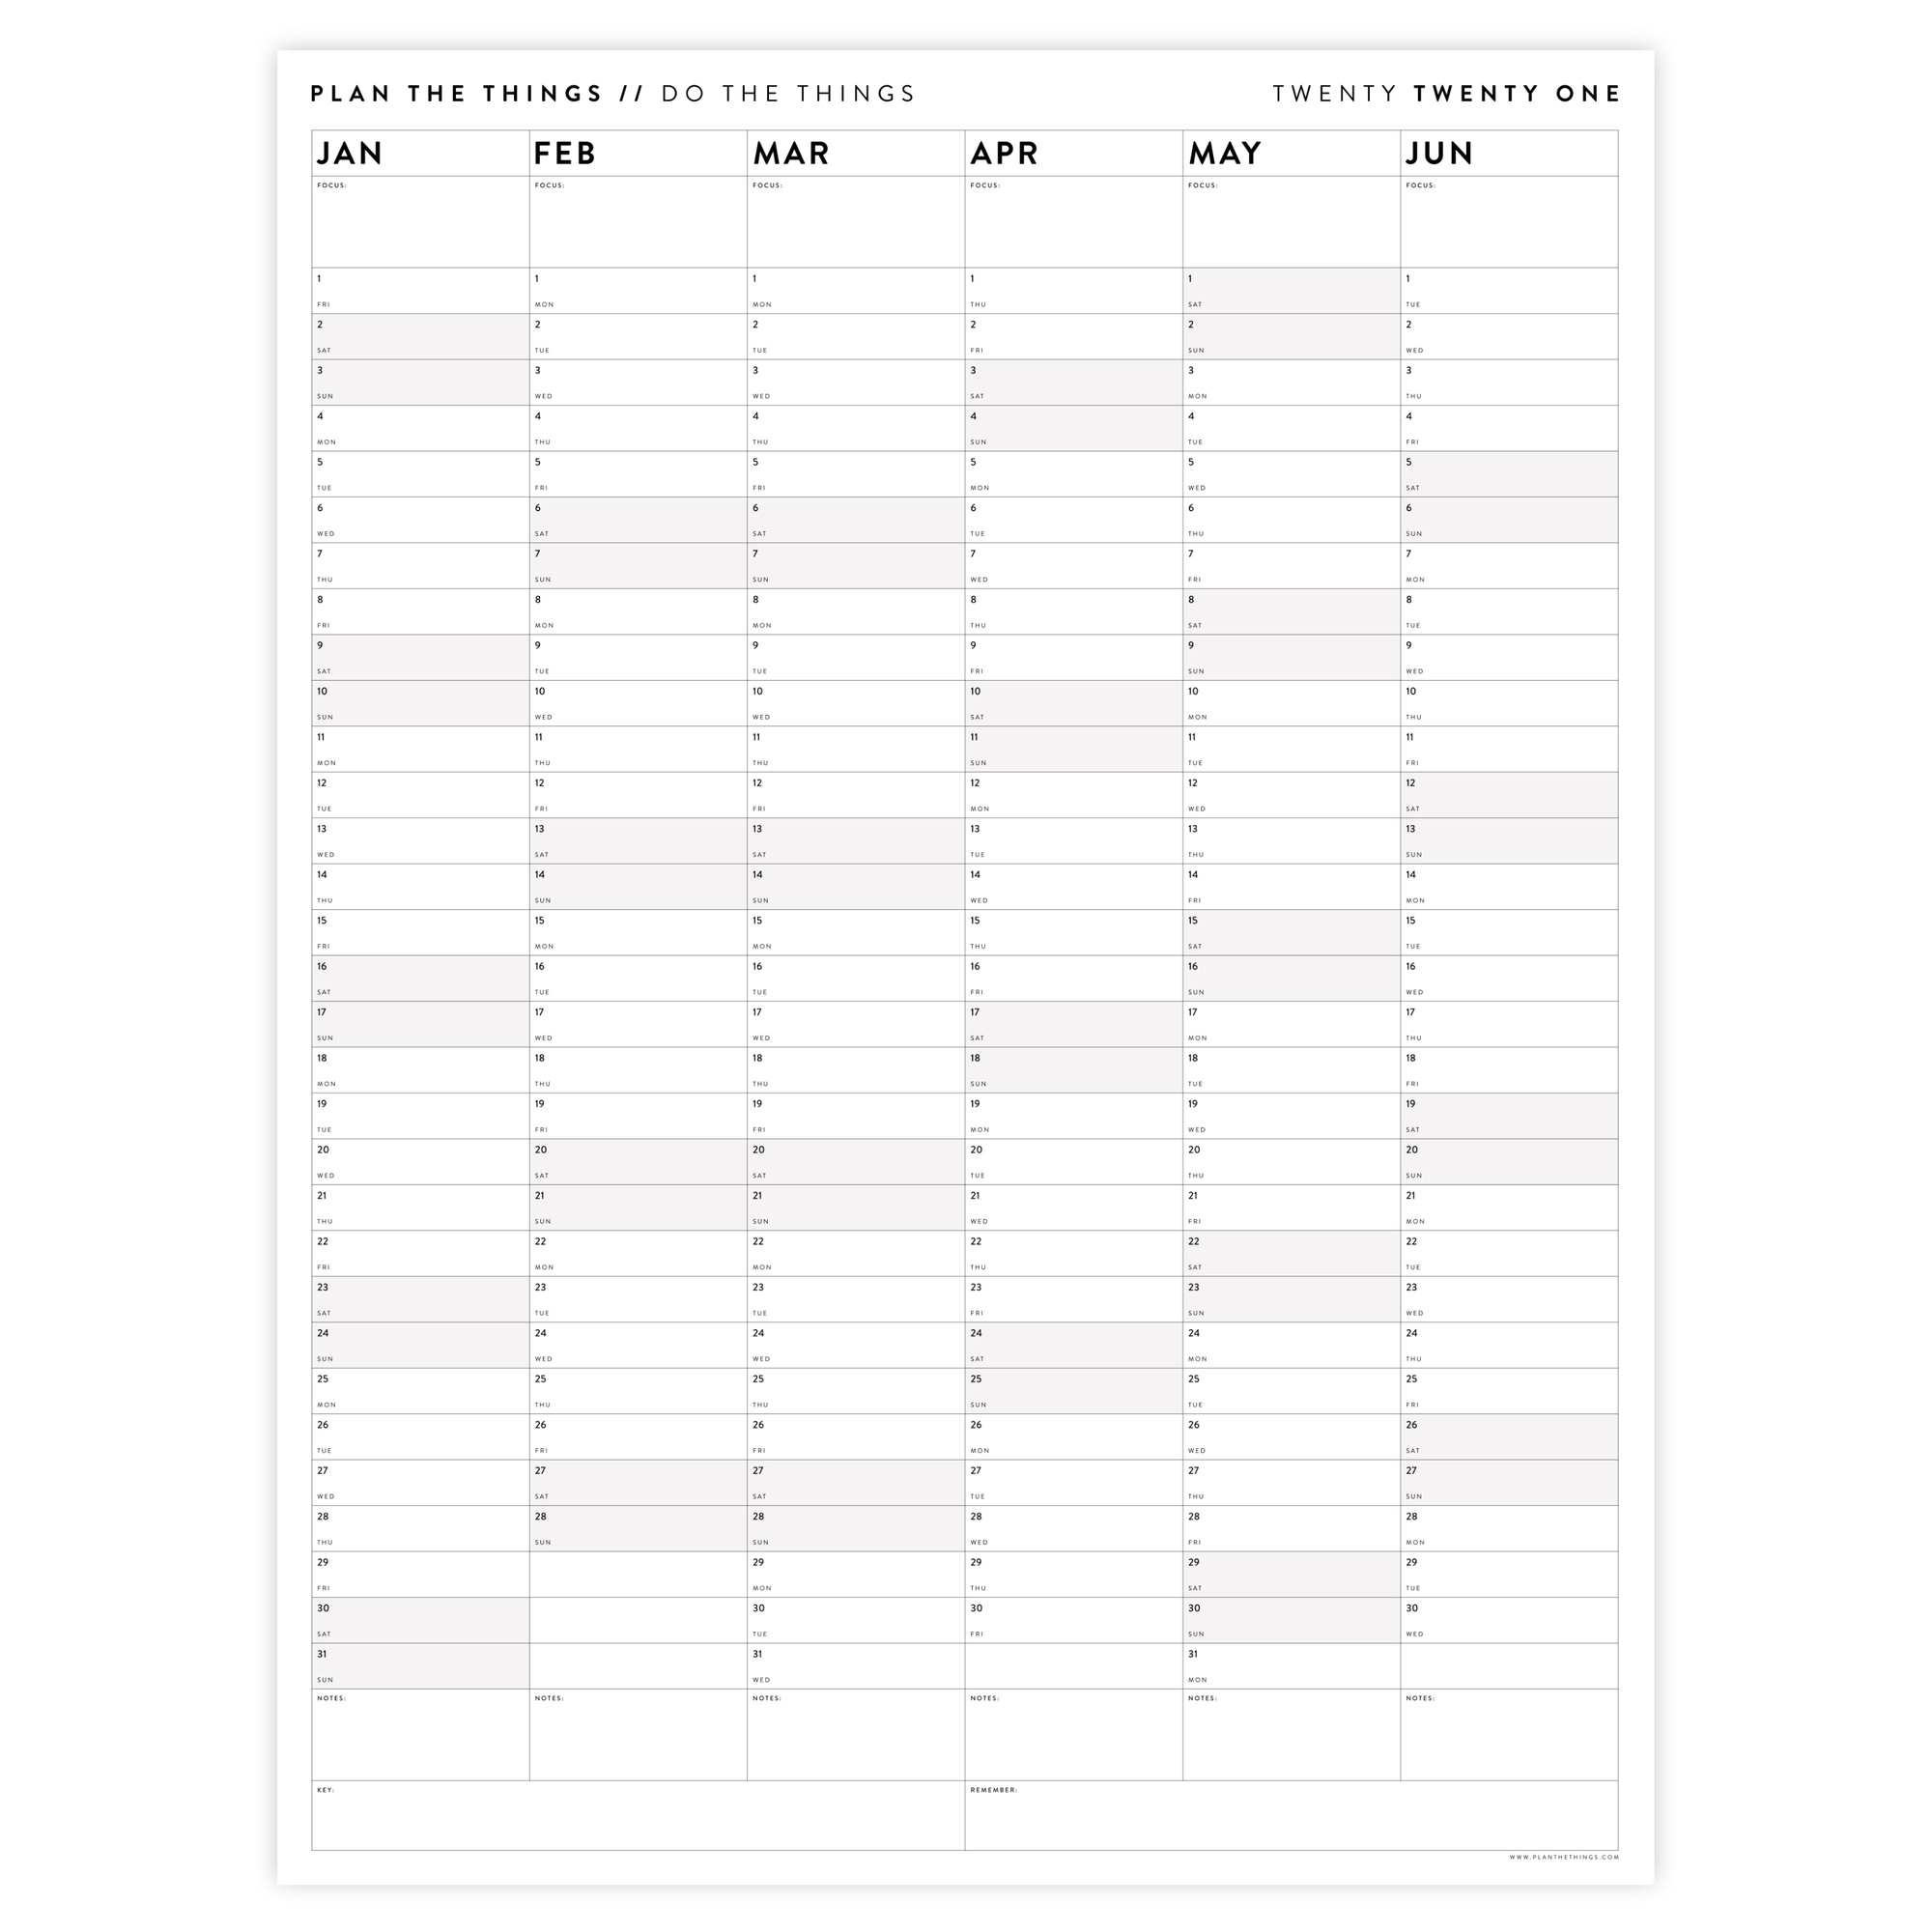 SIX MONTH 2021 WALL CALENDAR (JANUARY TO JUNE) WITH GREY WEEKENDS